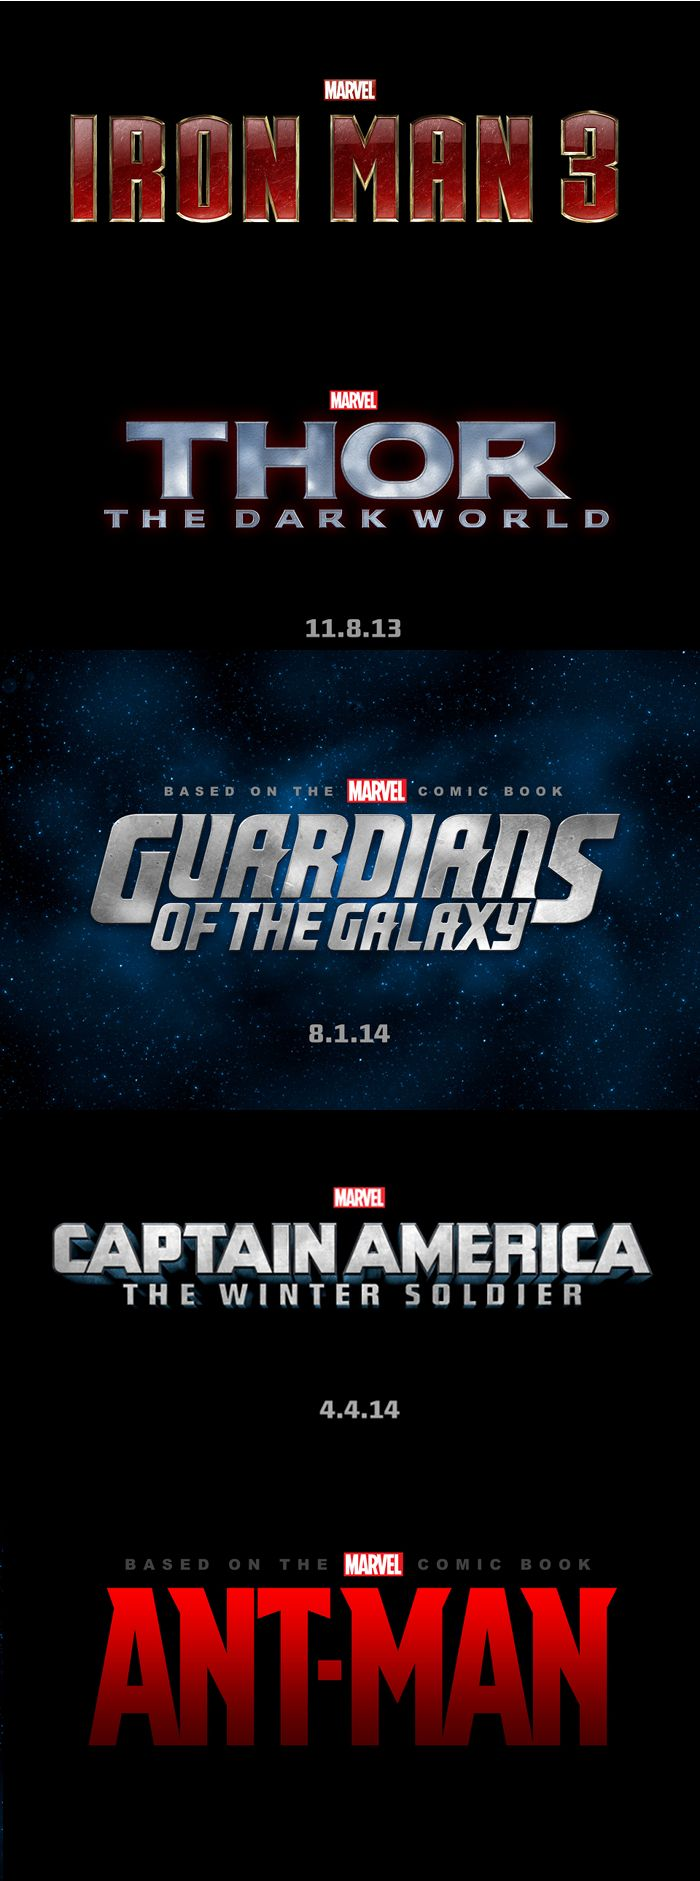 Marvel have unveiled the logos and sub titles for their upcoming films. Sub titles for Thor 2 and Captain America 2 were announced  (The Dark World and The Winter Soldier respectively) and Guardians of the Galaxy and Antman were confirmed.    Which one are you most looking forward to?